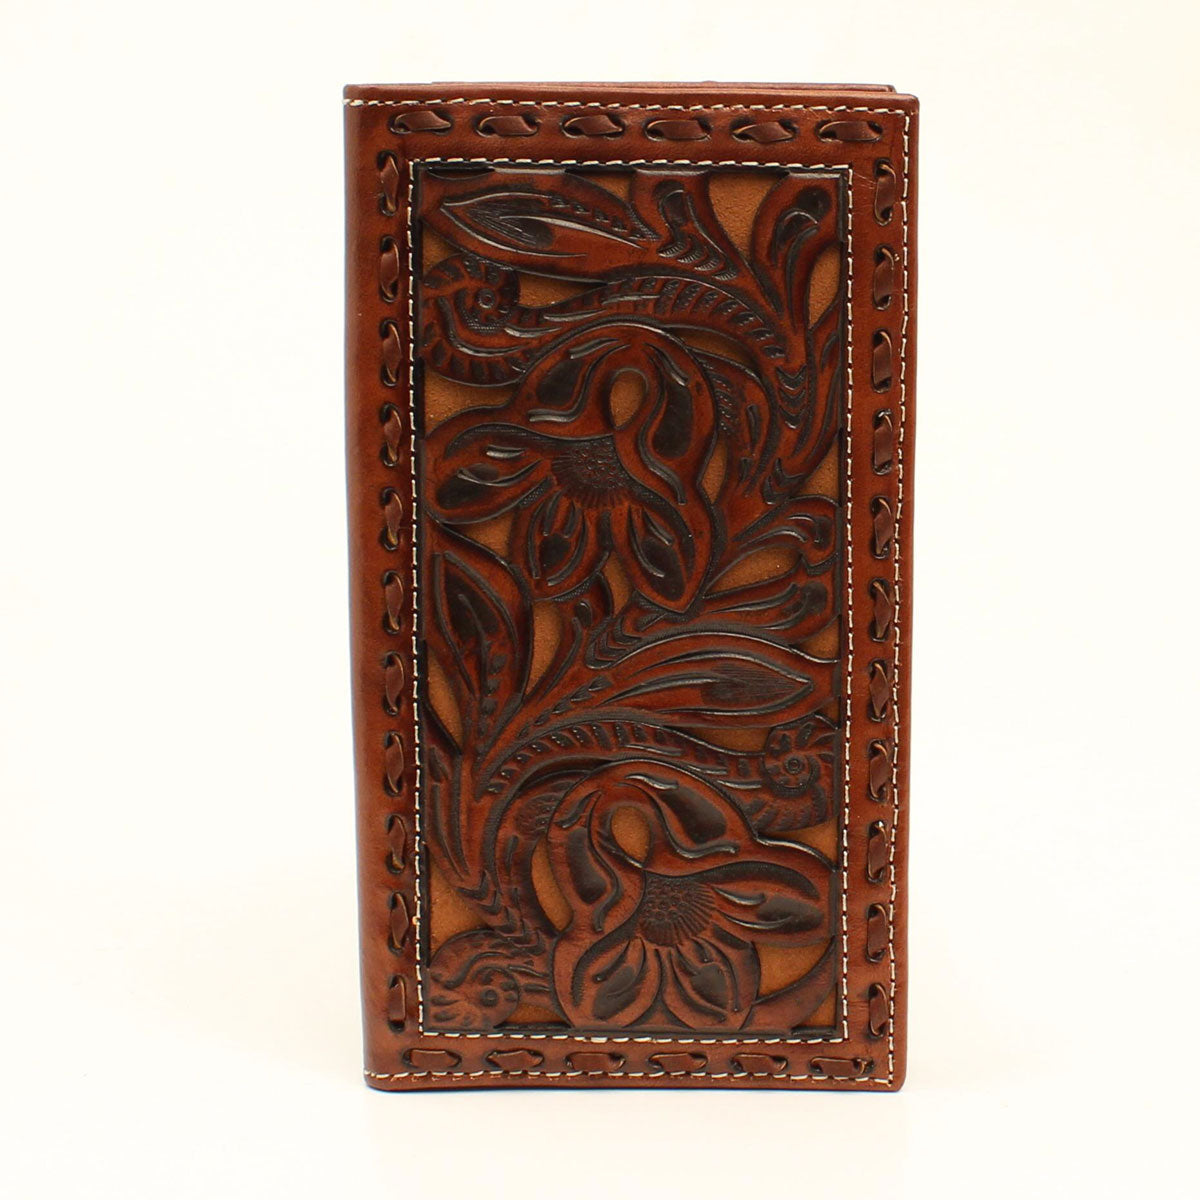 Nocona Embossed Floral Pierced Tan Leather Rodeo Wallet